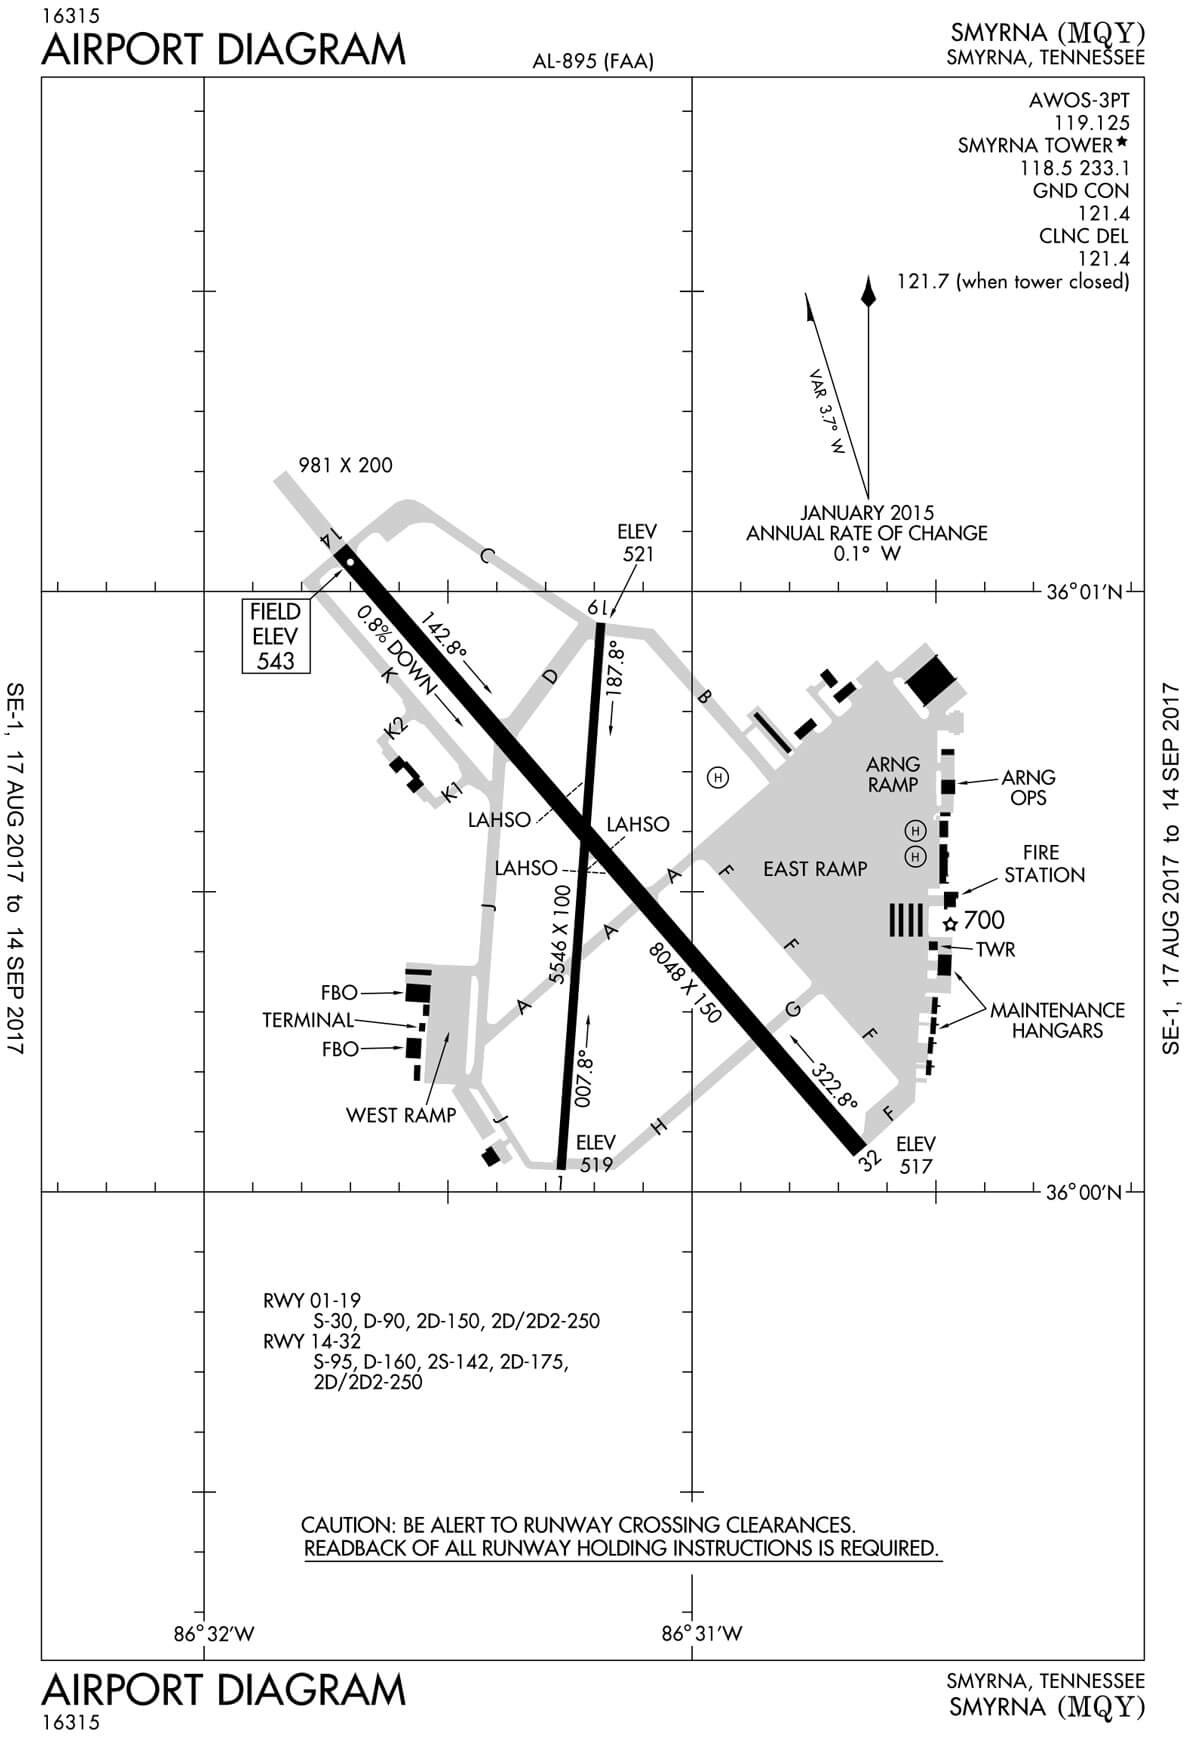 Airport diagram of the Smyrna / Rutherford County Airport Authority